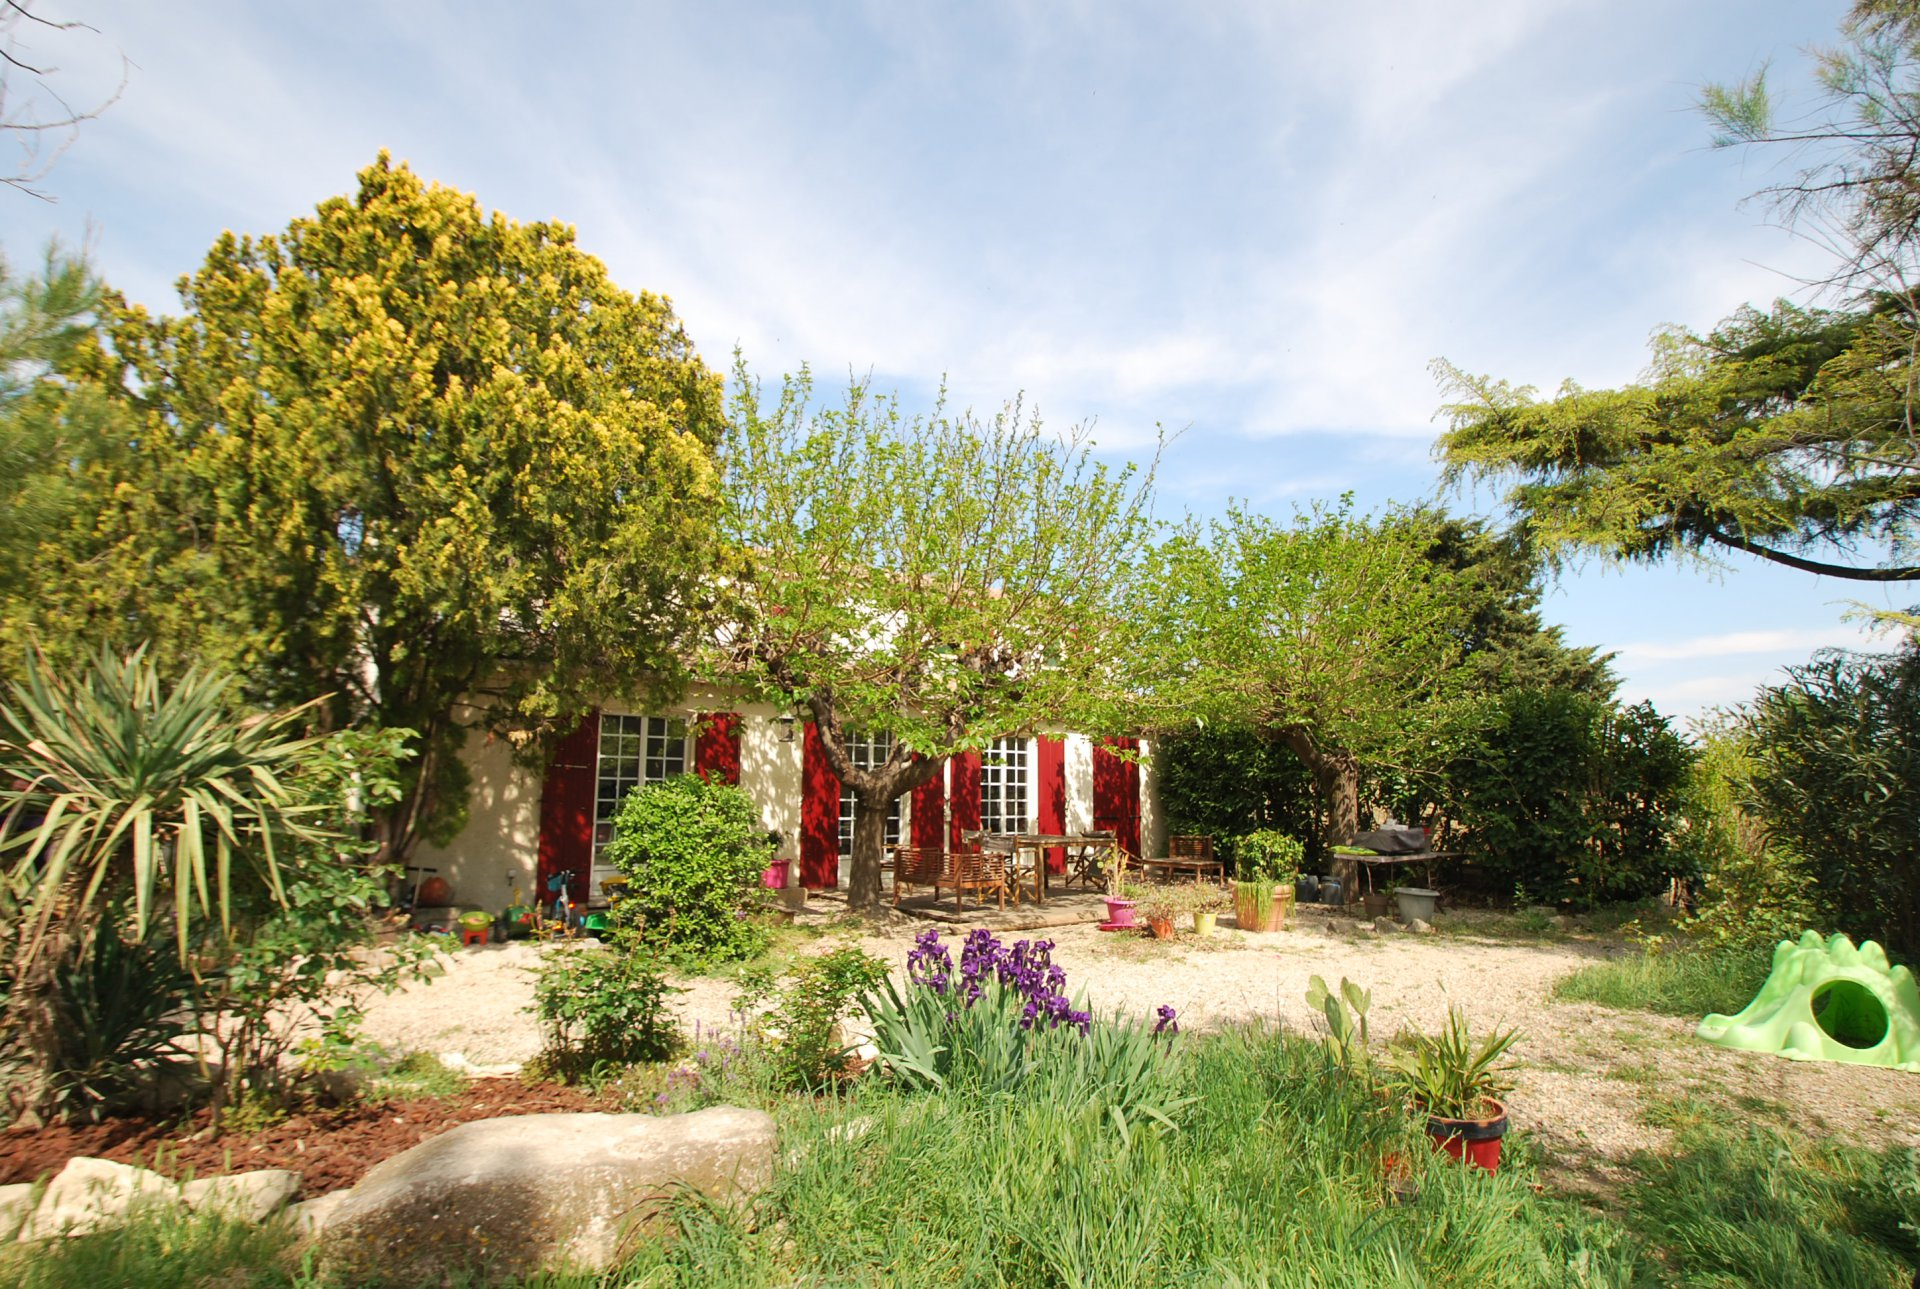 4 bedroom house with outbuildings for sale on the outskirts of Arles